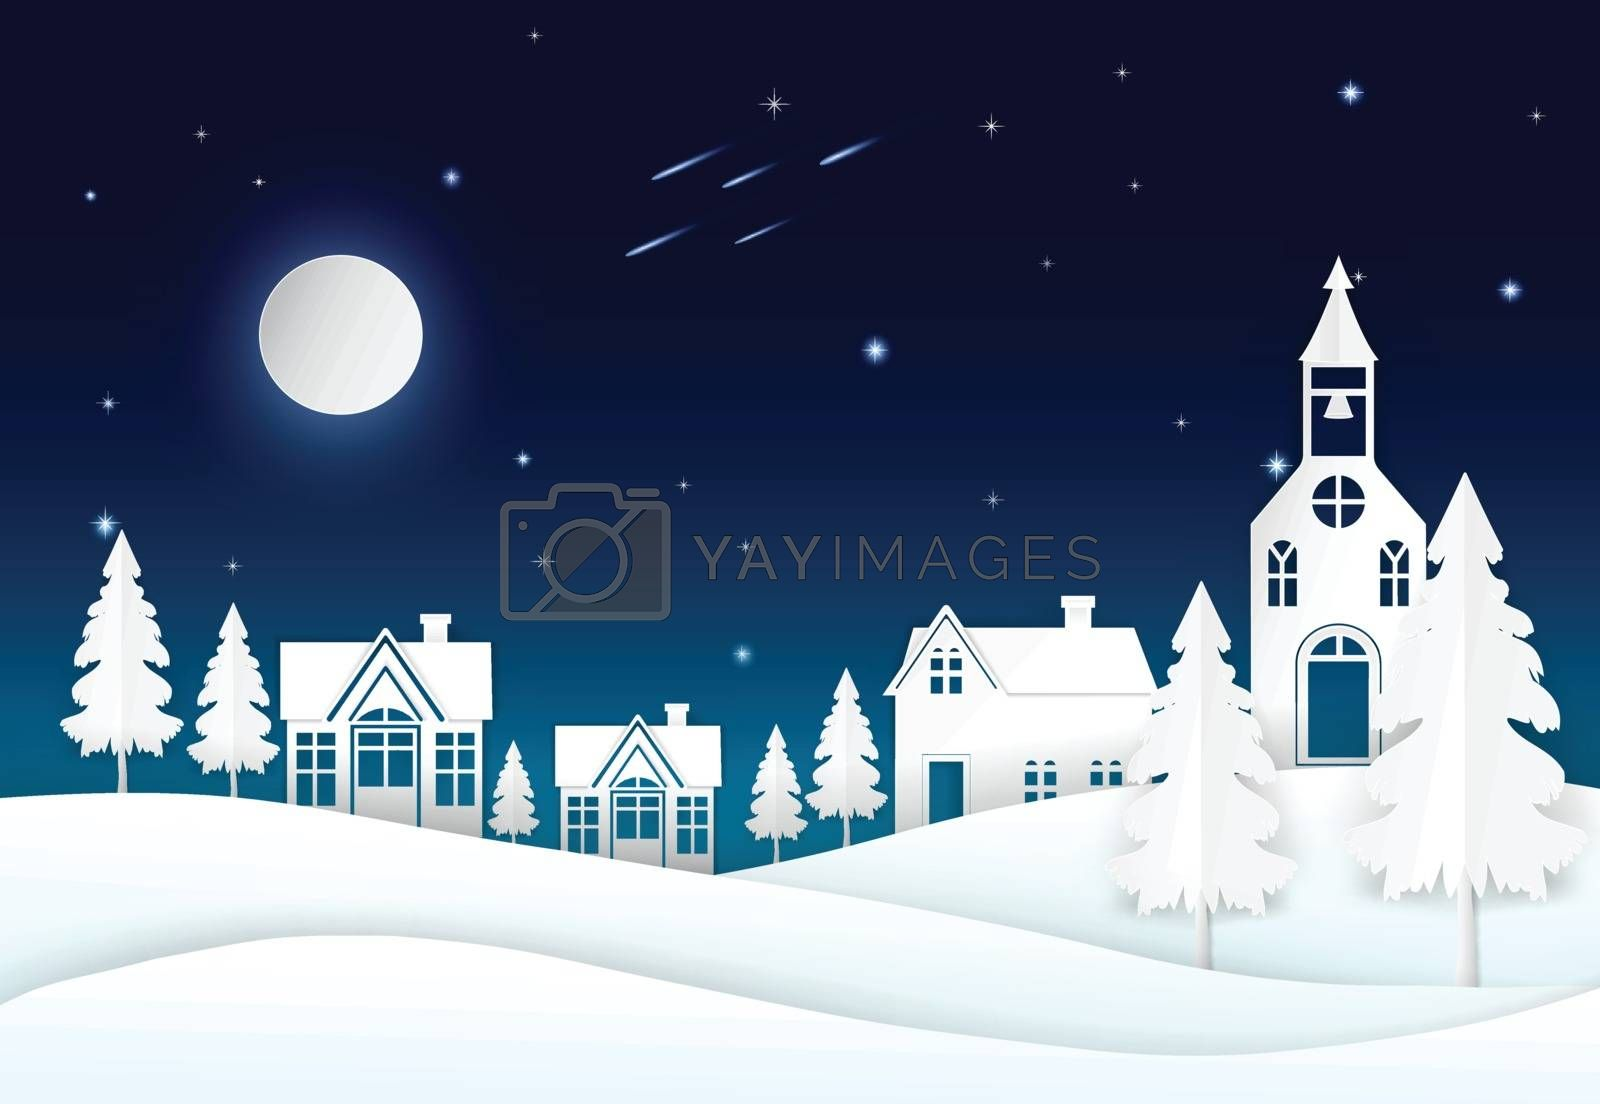 Full moon on night sky with star, comet and village. Paper art, paper craft, paper cut style illustration background